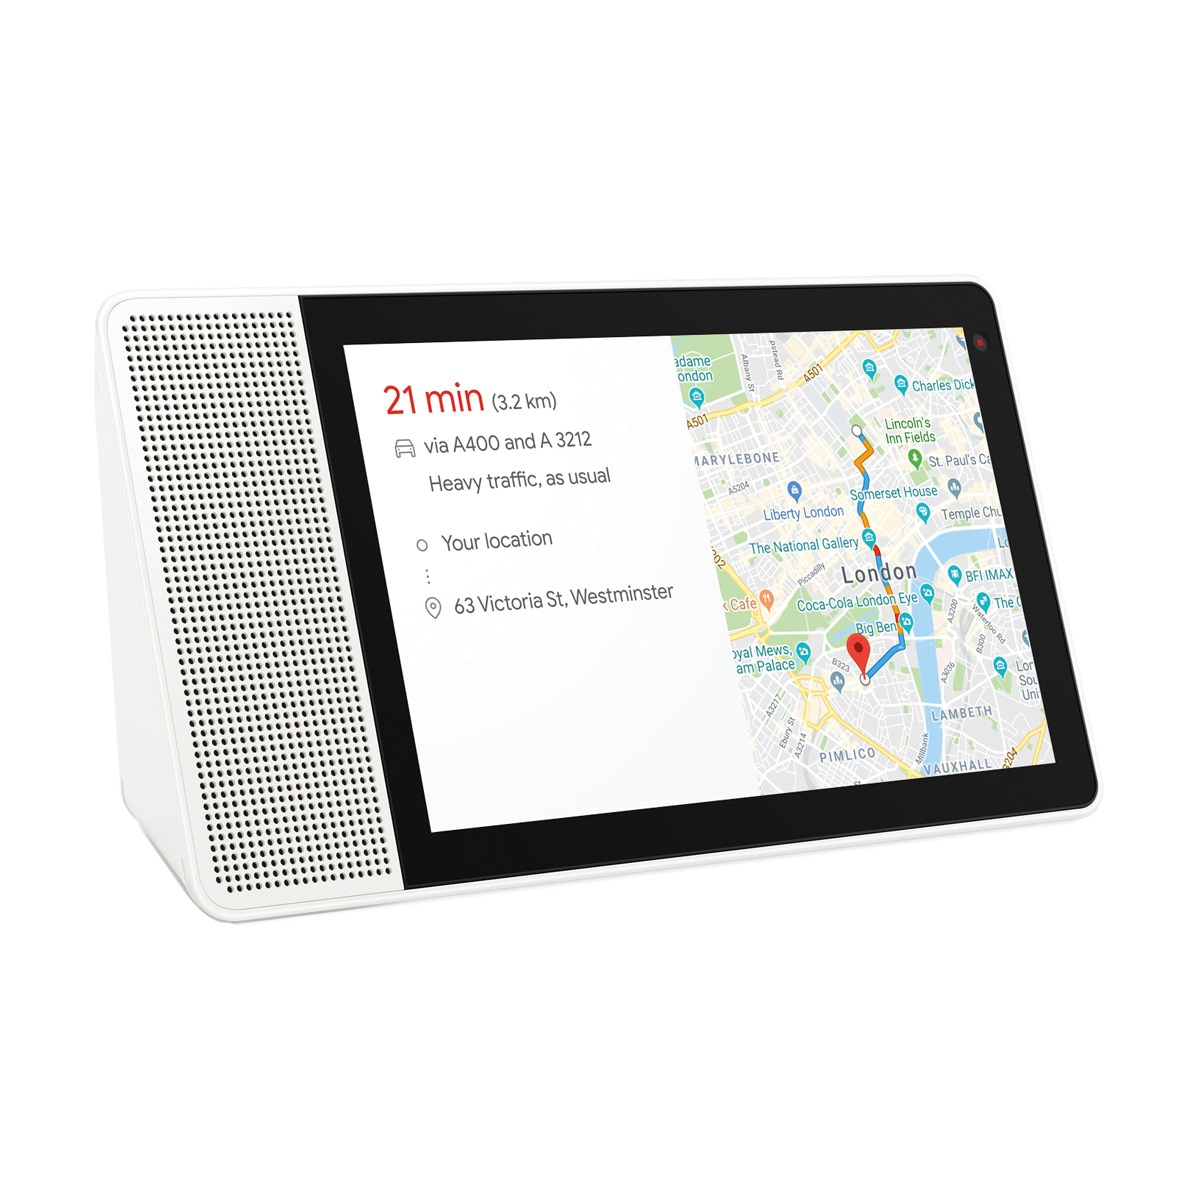 Pantalla inteligente Lenovo Smart Display 10""